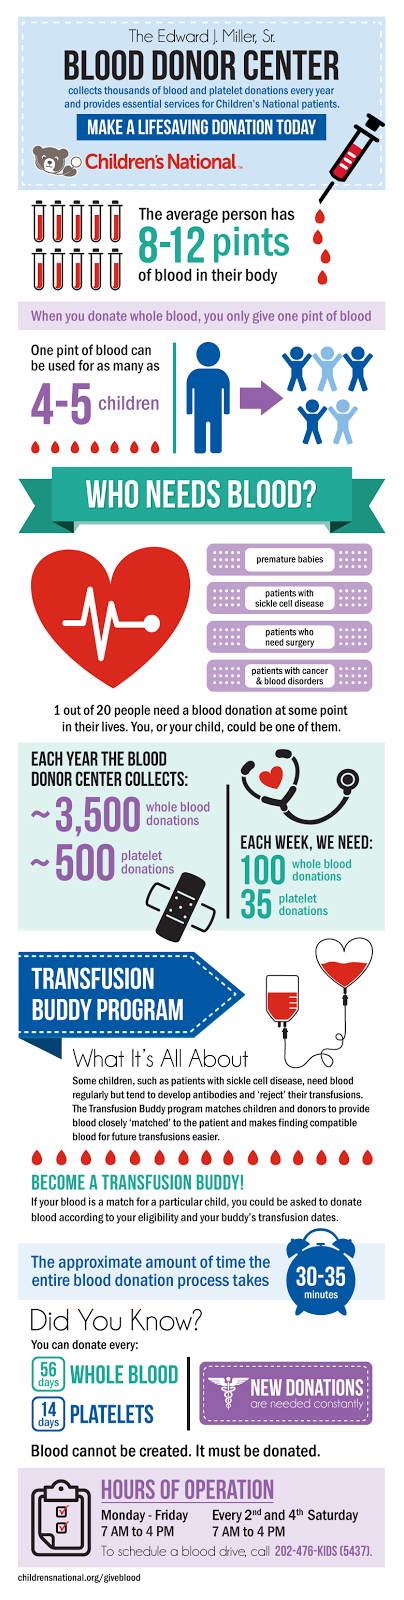 Blood Donor Center Infographic